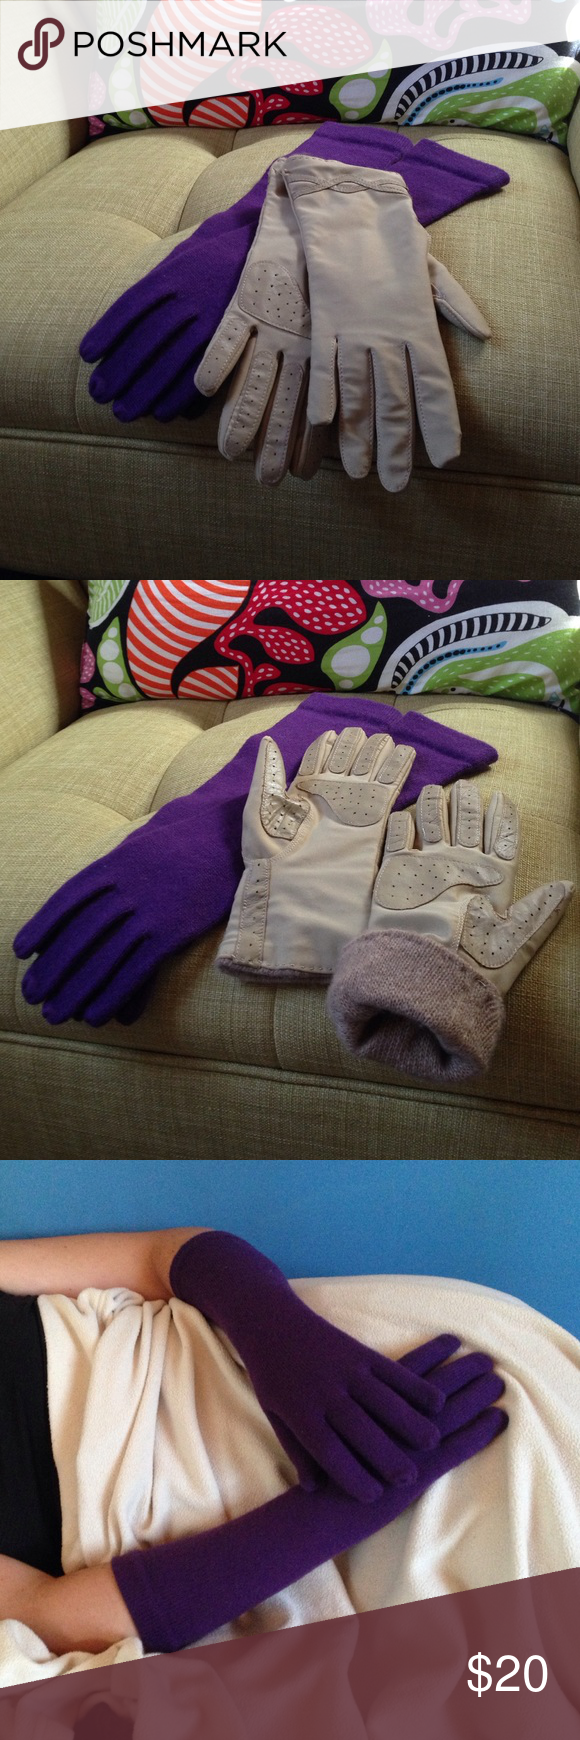 Gloves - Two Pairs Both pairs are new and one size fits most.  The Fownes brand, tan pair,  have a comfortable stretchy nylon/spandex outer with 100% cashmere lining.  Reinforced palm and finger pads make for good gripping. There is a decorative criss-cross pattern on the front.  The   Aris brand purple pair are of soft acrylic/nylon blend. They extend to near the elbow to keep those wrists warm during cold days or complete a winter dress up princess! Accessories Gloves & Mittens